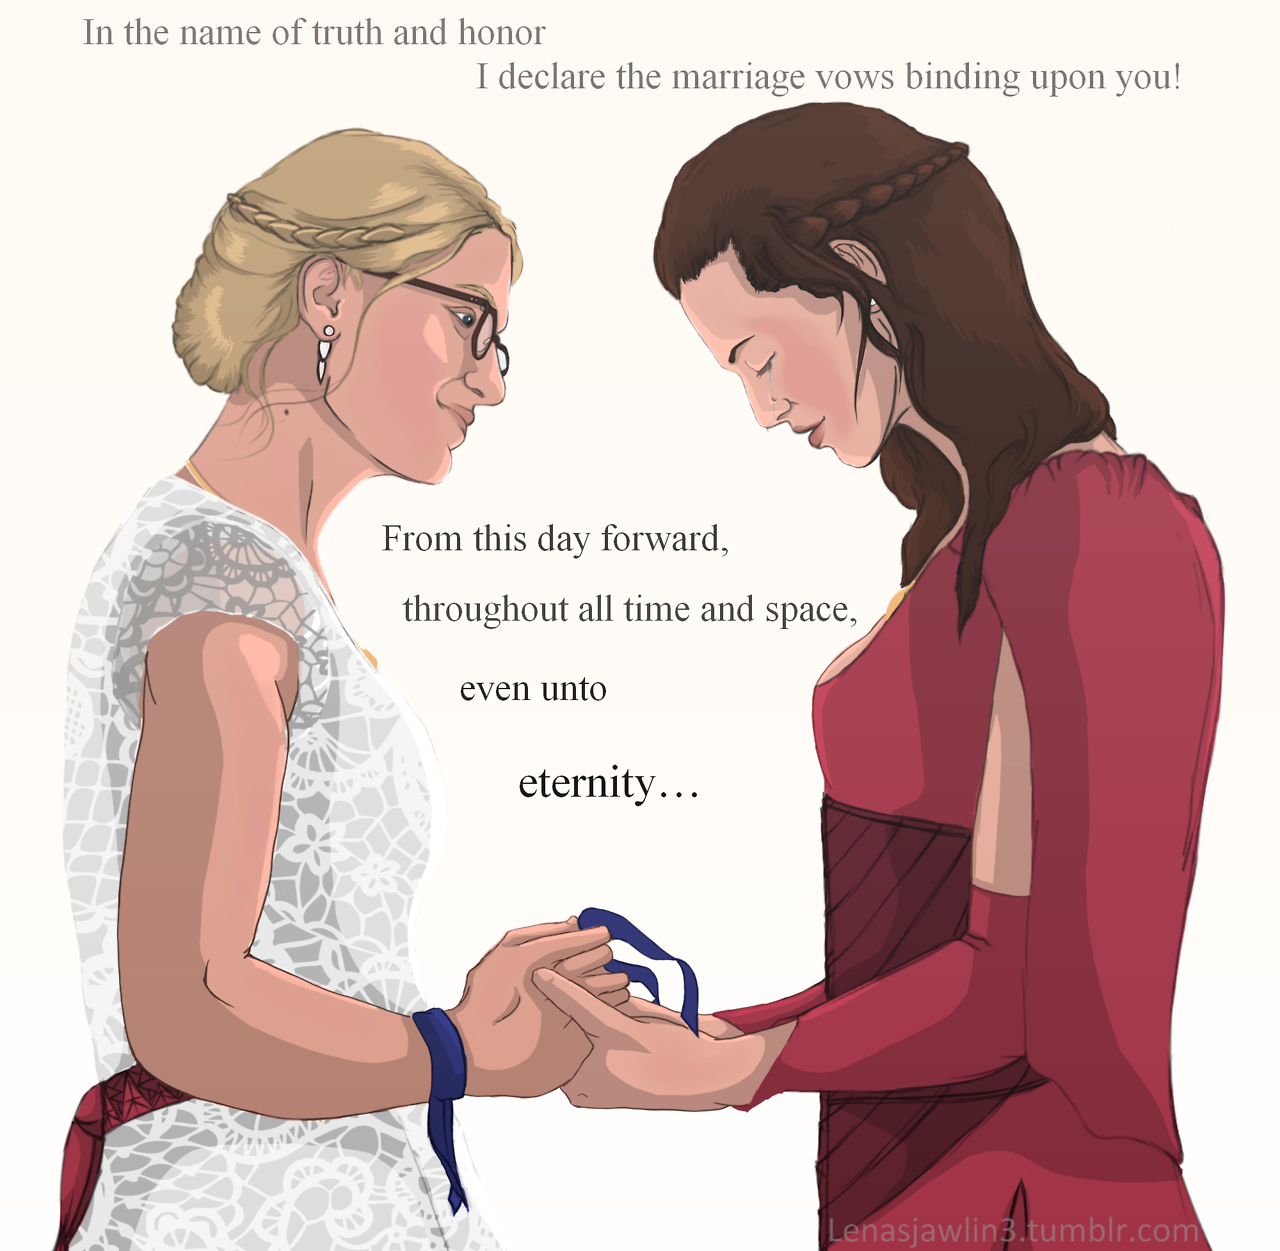 supercorp pregnant fanfic - Google Search | Supercorp in